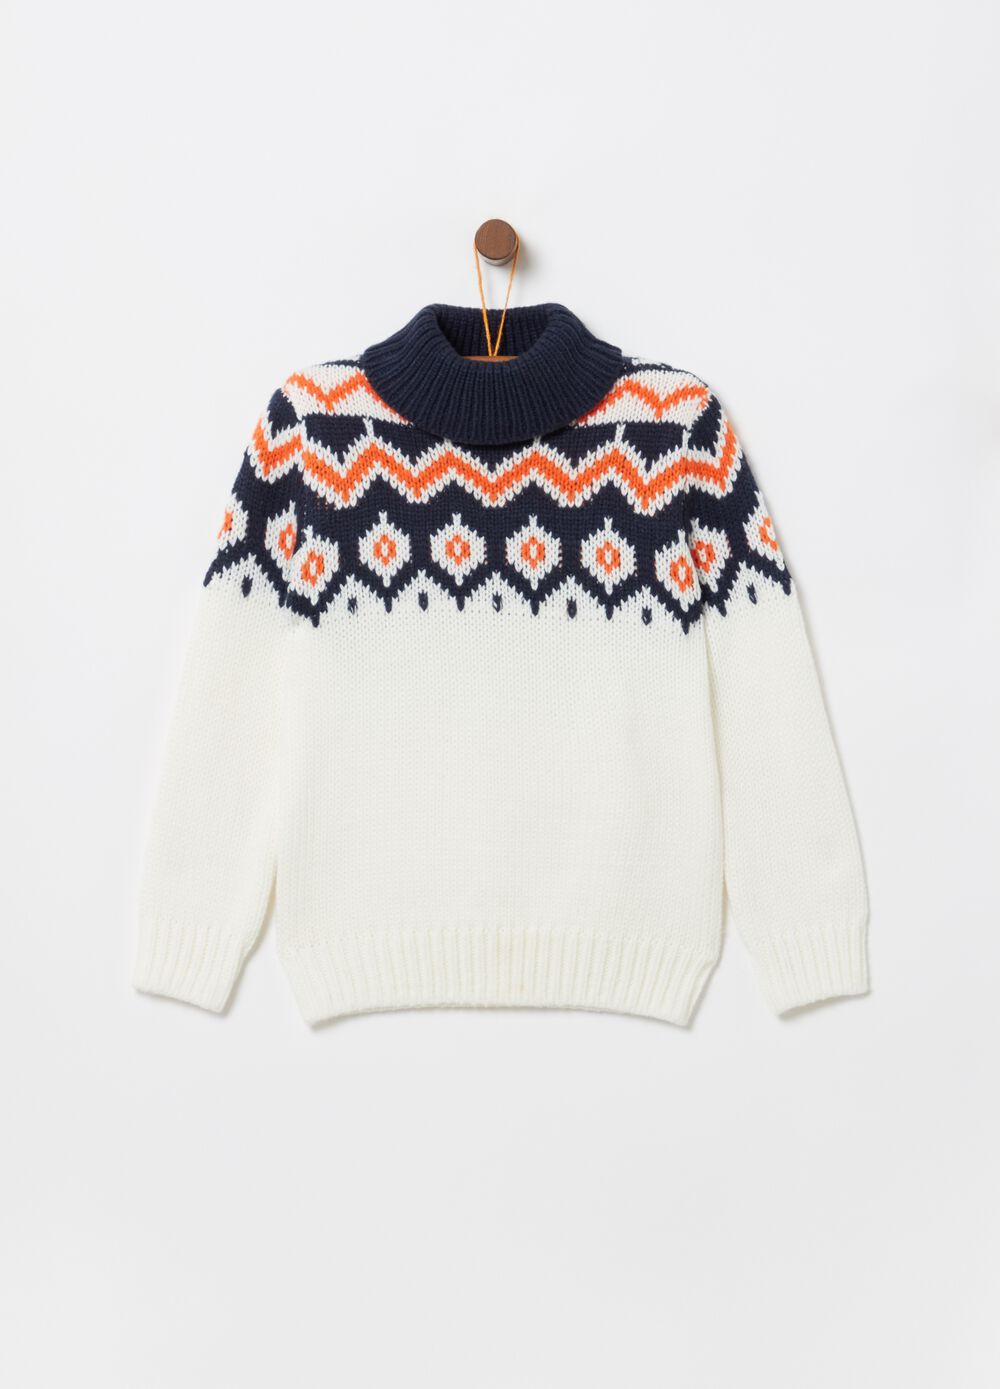 Knitted top with soft high neck and pattern